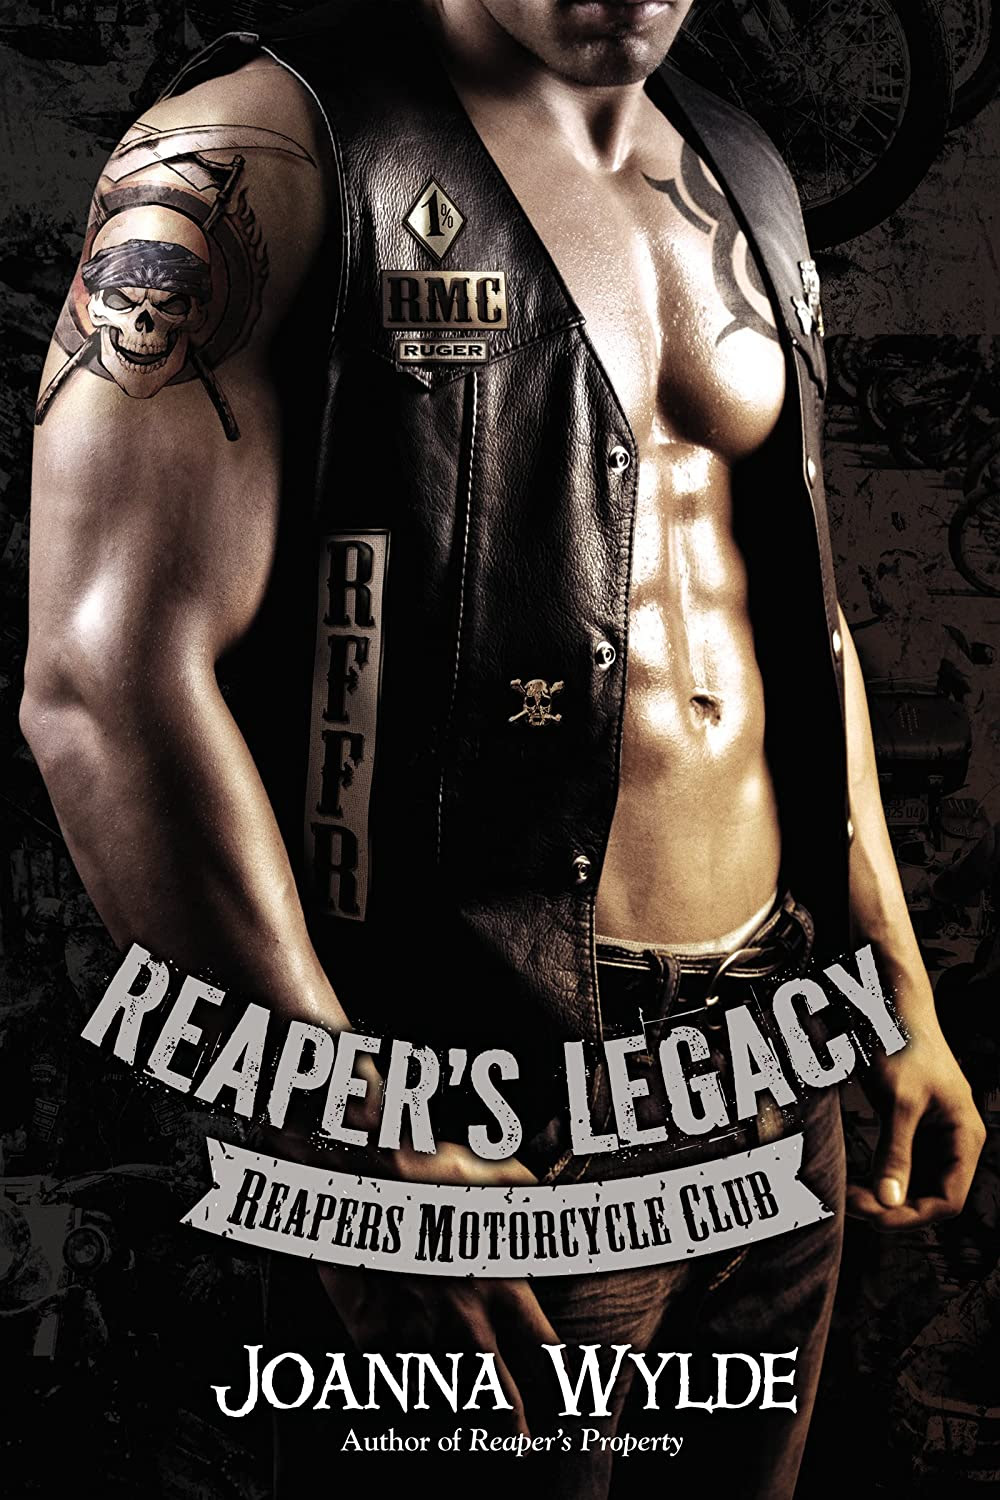 http://www.amazon.com/Reapers-Legacy-Motorcycle-Club-Book-ebook/dp/B00DMCPODG/ref=asap_bc?ie=UTF8